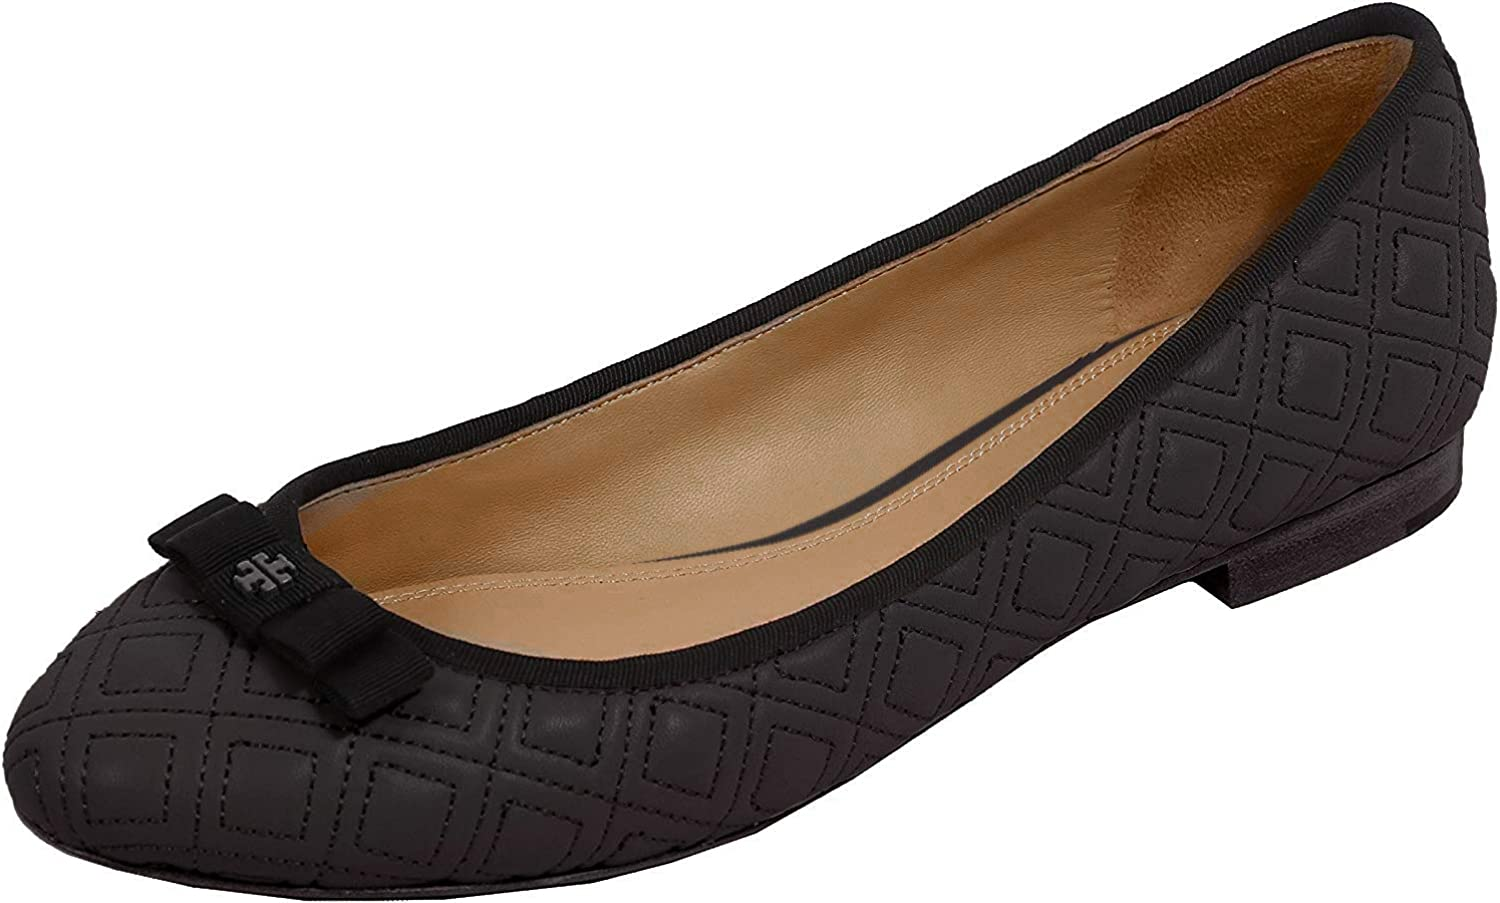 Tory Burch Women's Shoes 43080 Leather